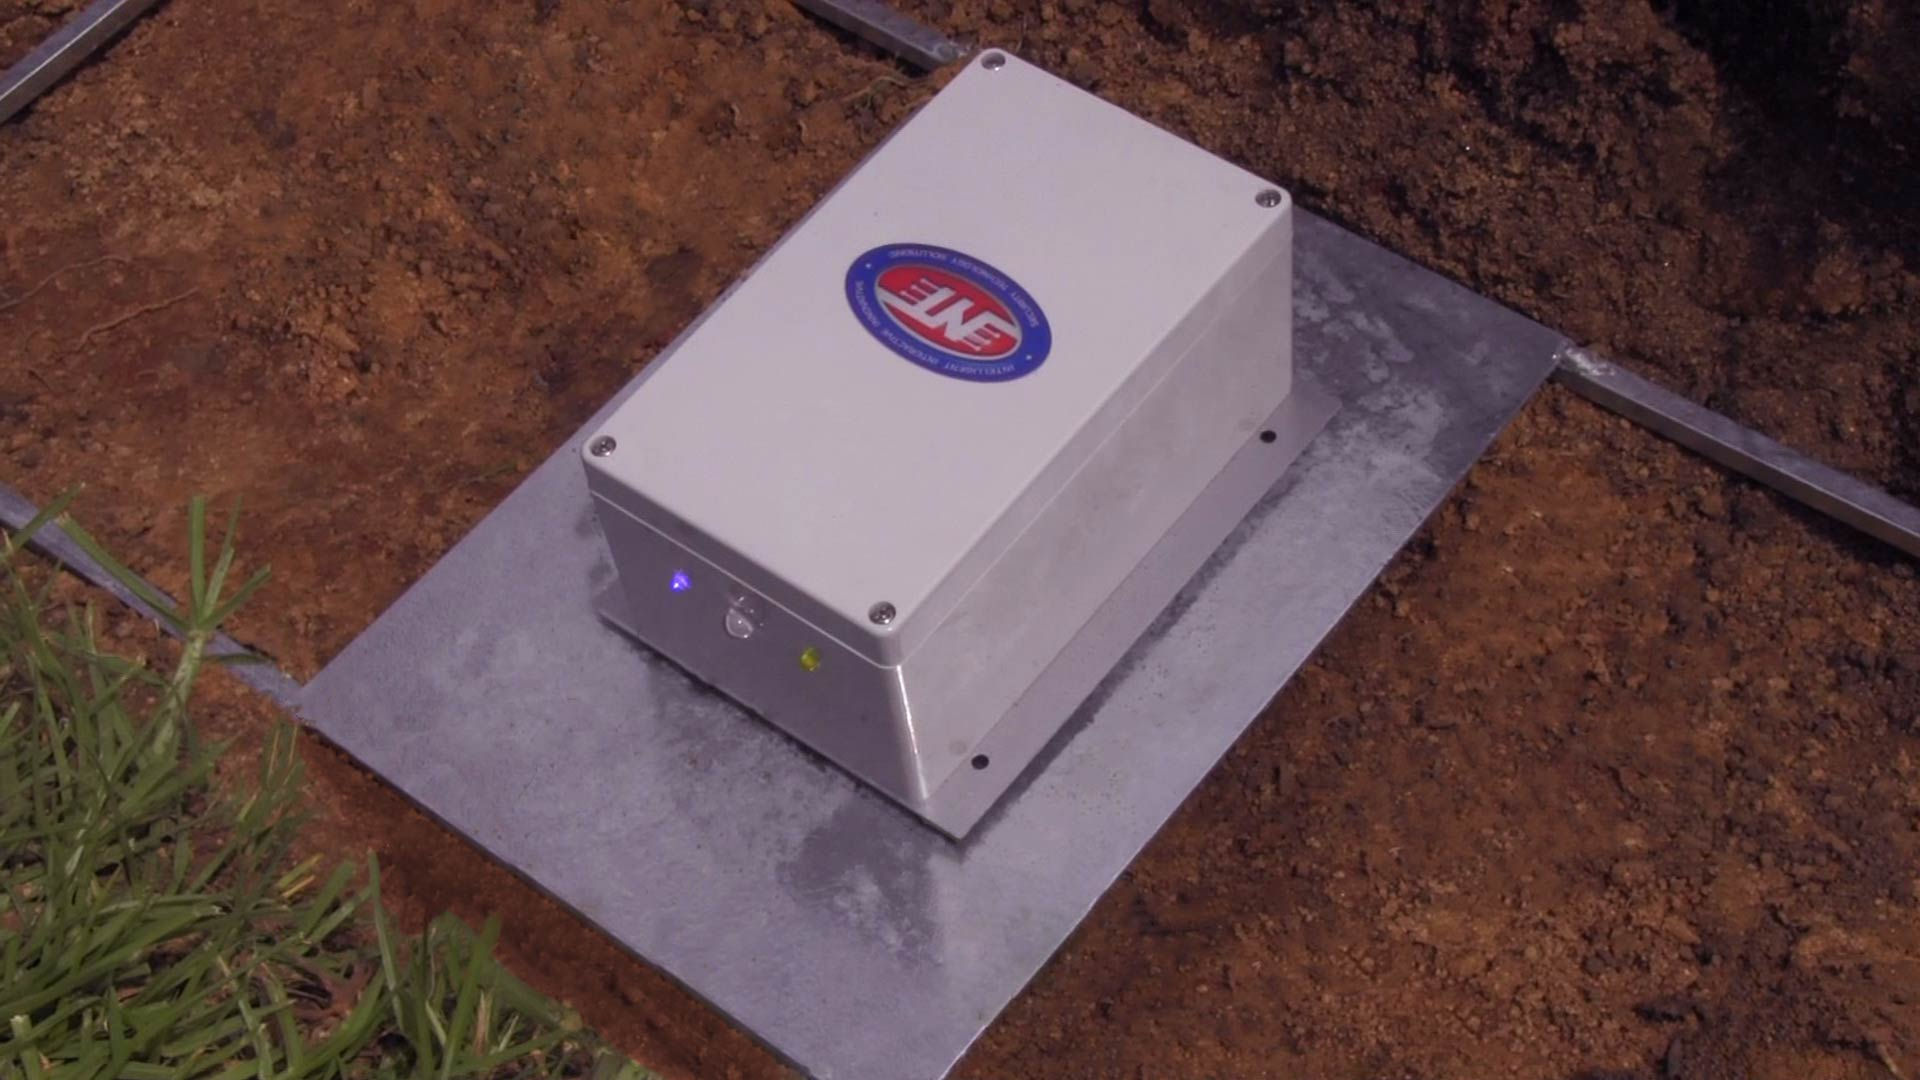 Underground Alarm That detect vibrations to send tamper alarms. Mostly Used to protect Underground power cables but its uses may vary